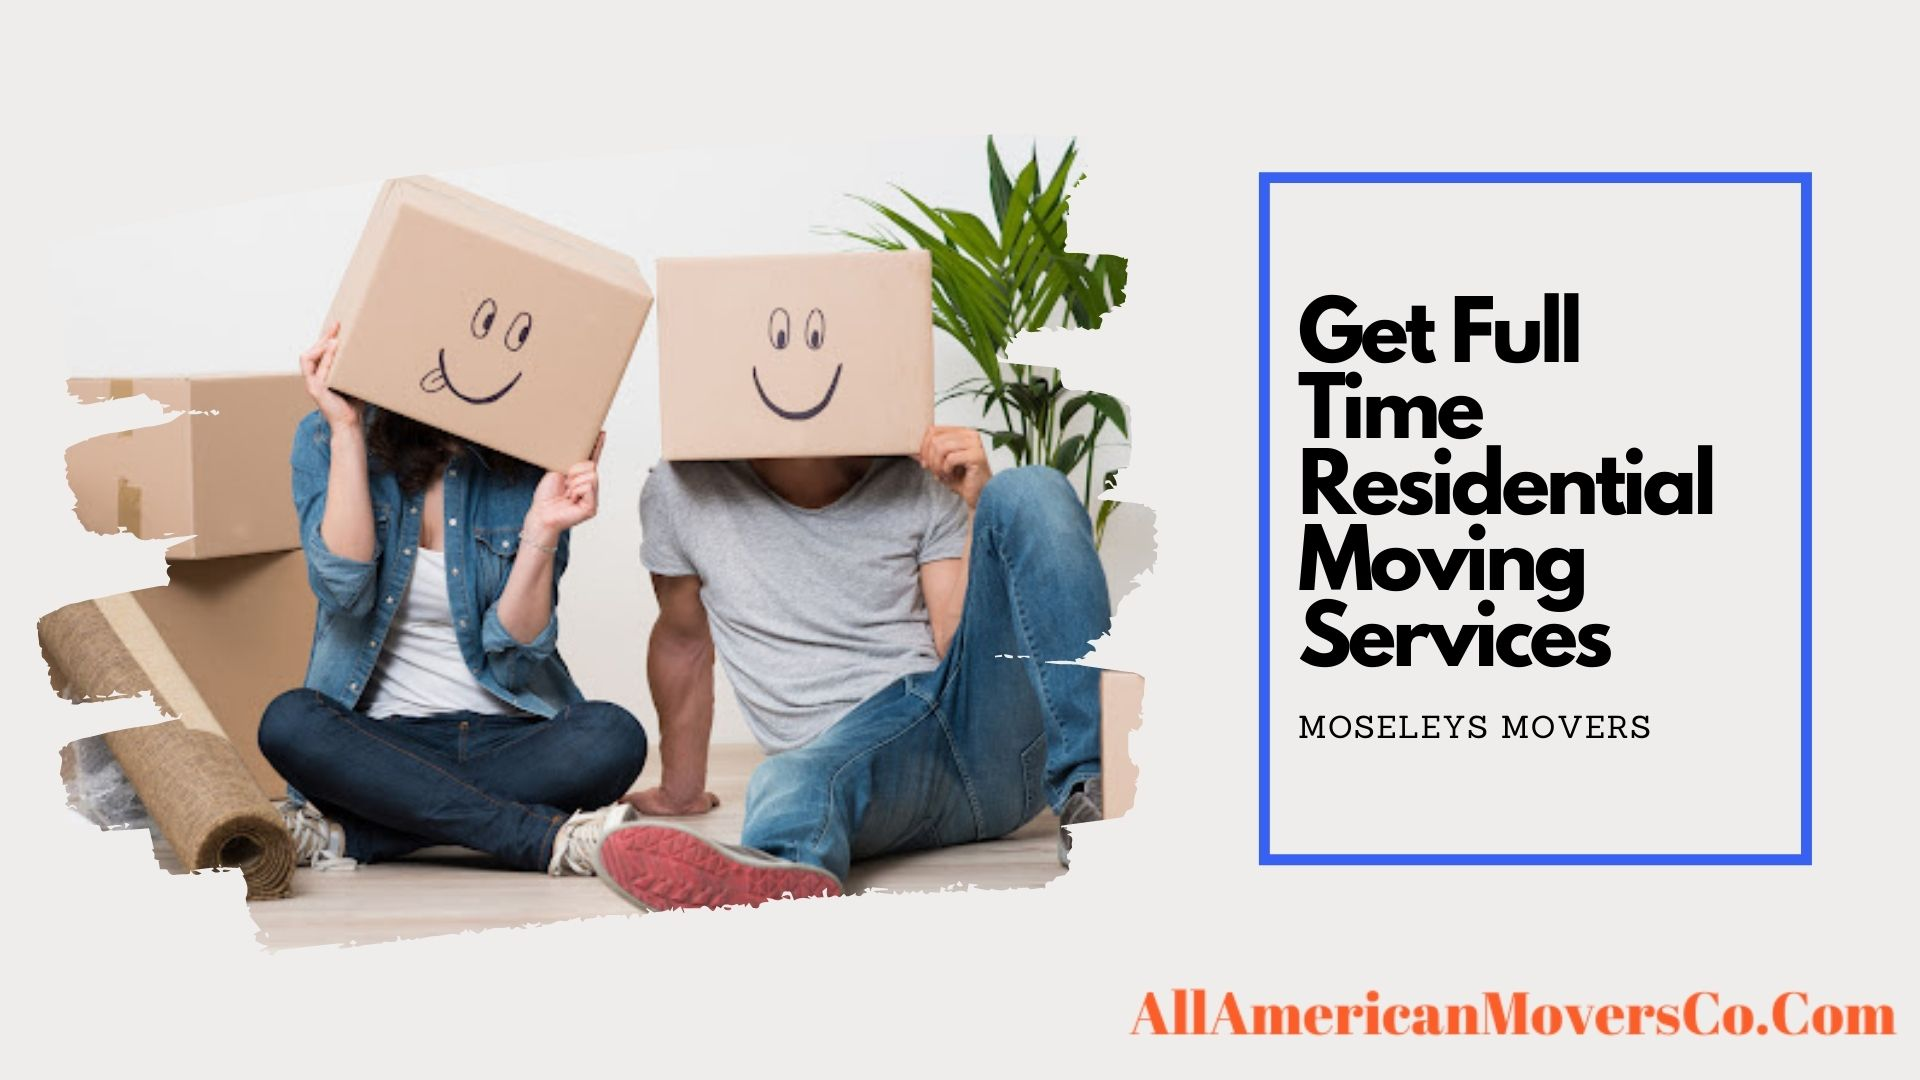 Get Professionals Residential Moving Services Moseleys Movers